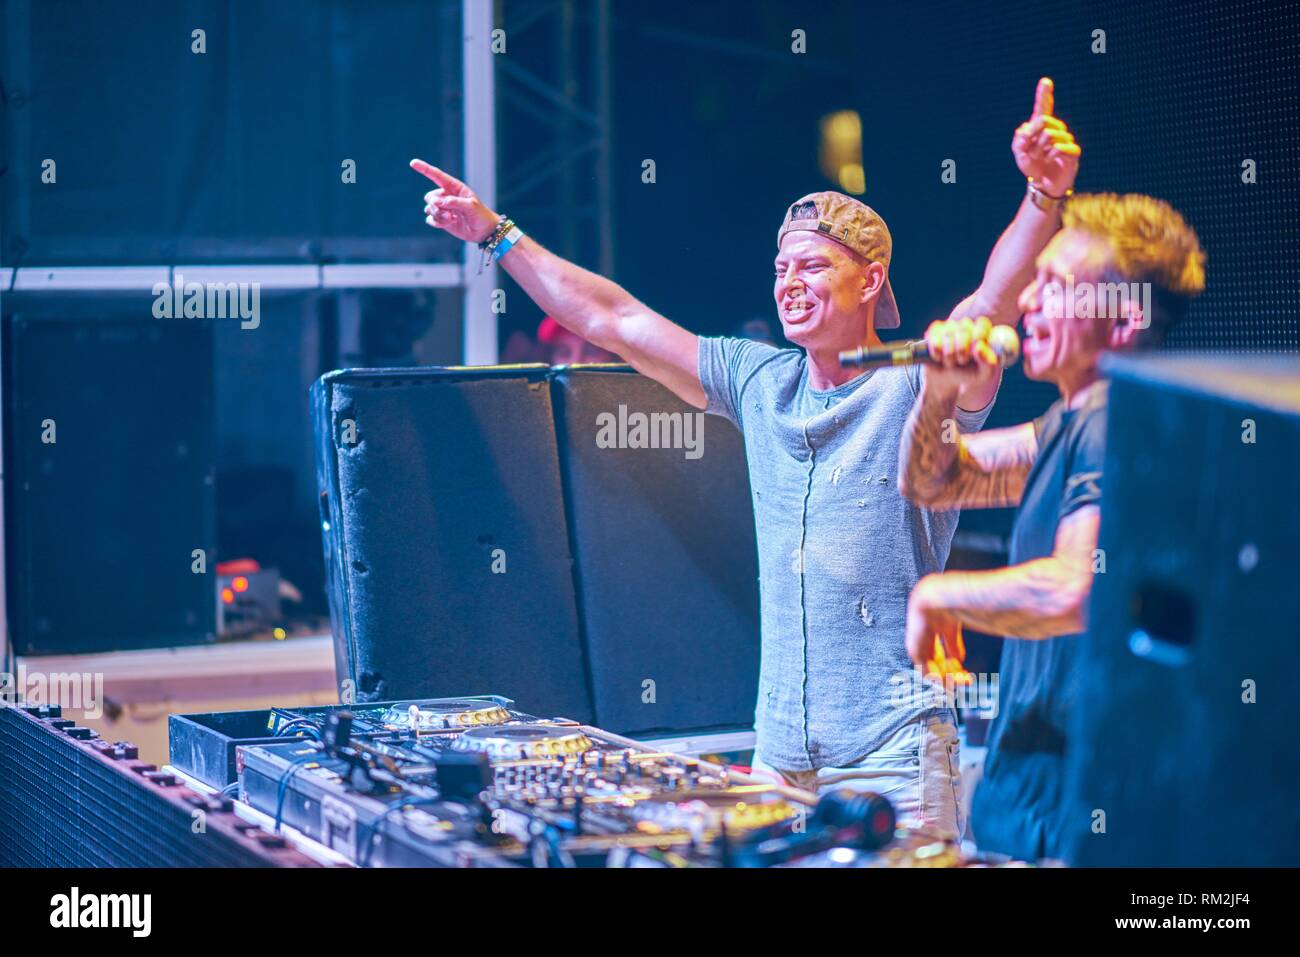 famous Instagrammer and fitness coach ´Student Aesthetics´ rising arms next to DJ Headhunterz playing at music festival Starbeach in Hersonissos, - Stock Image